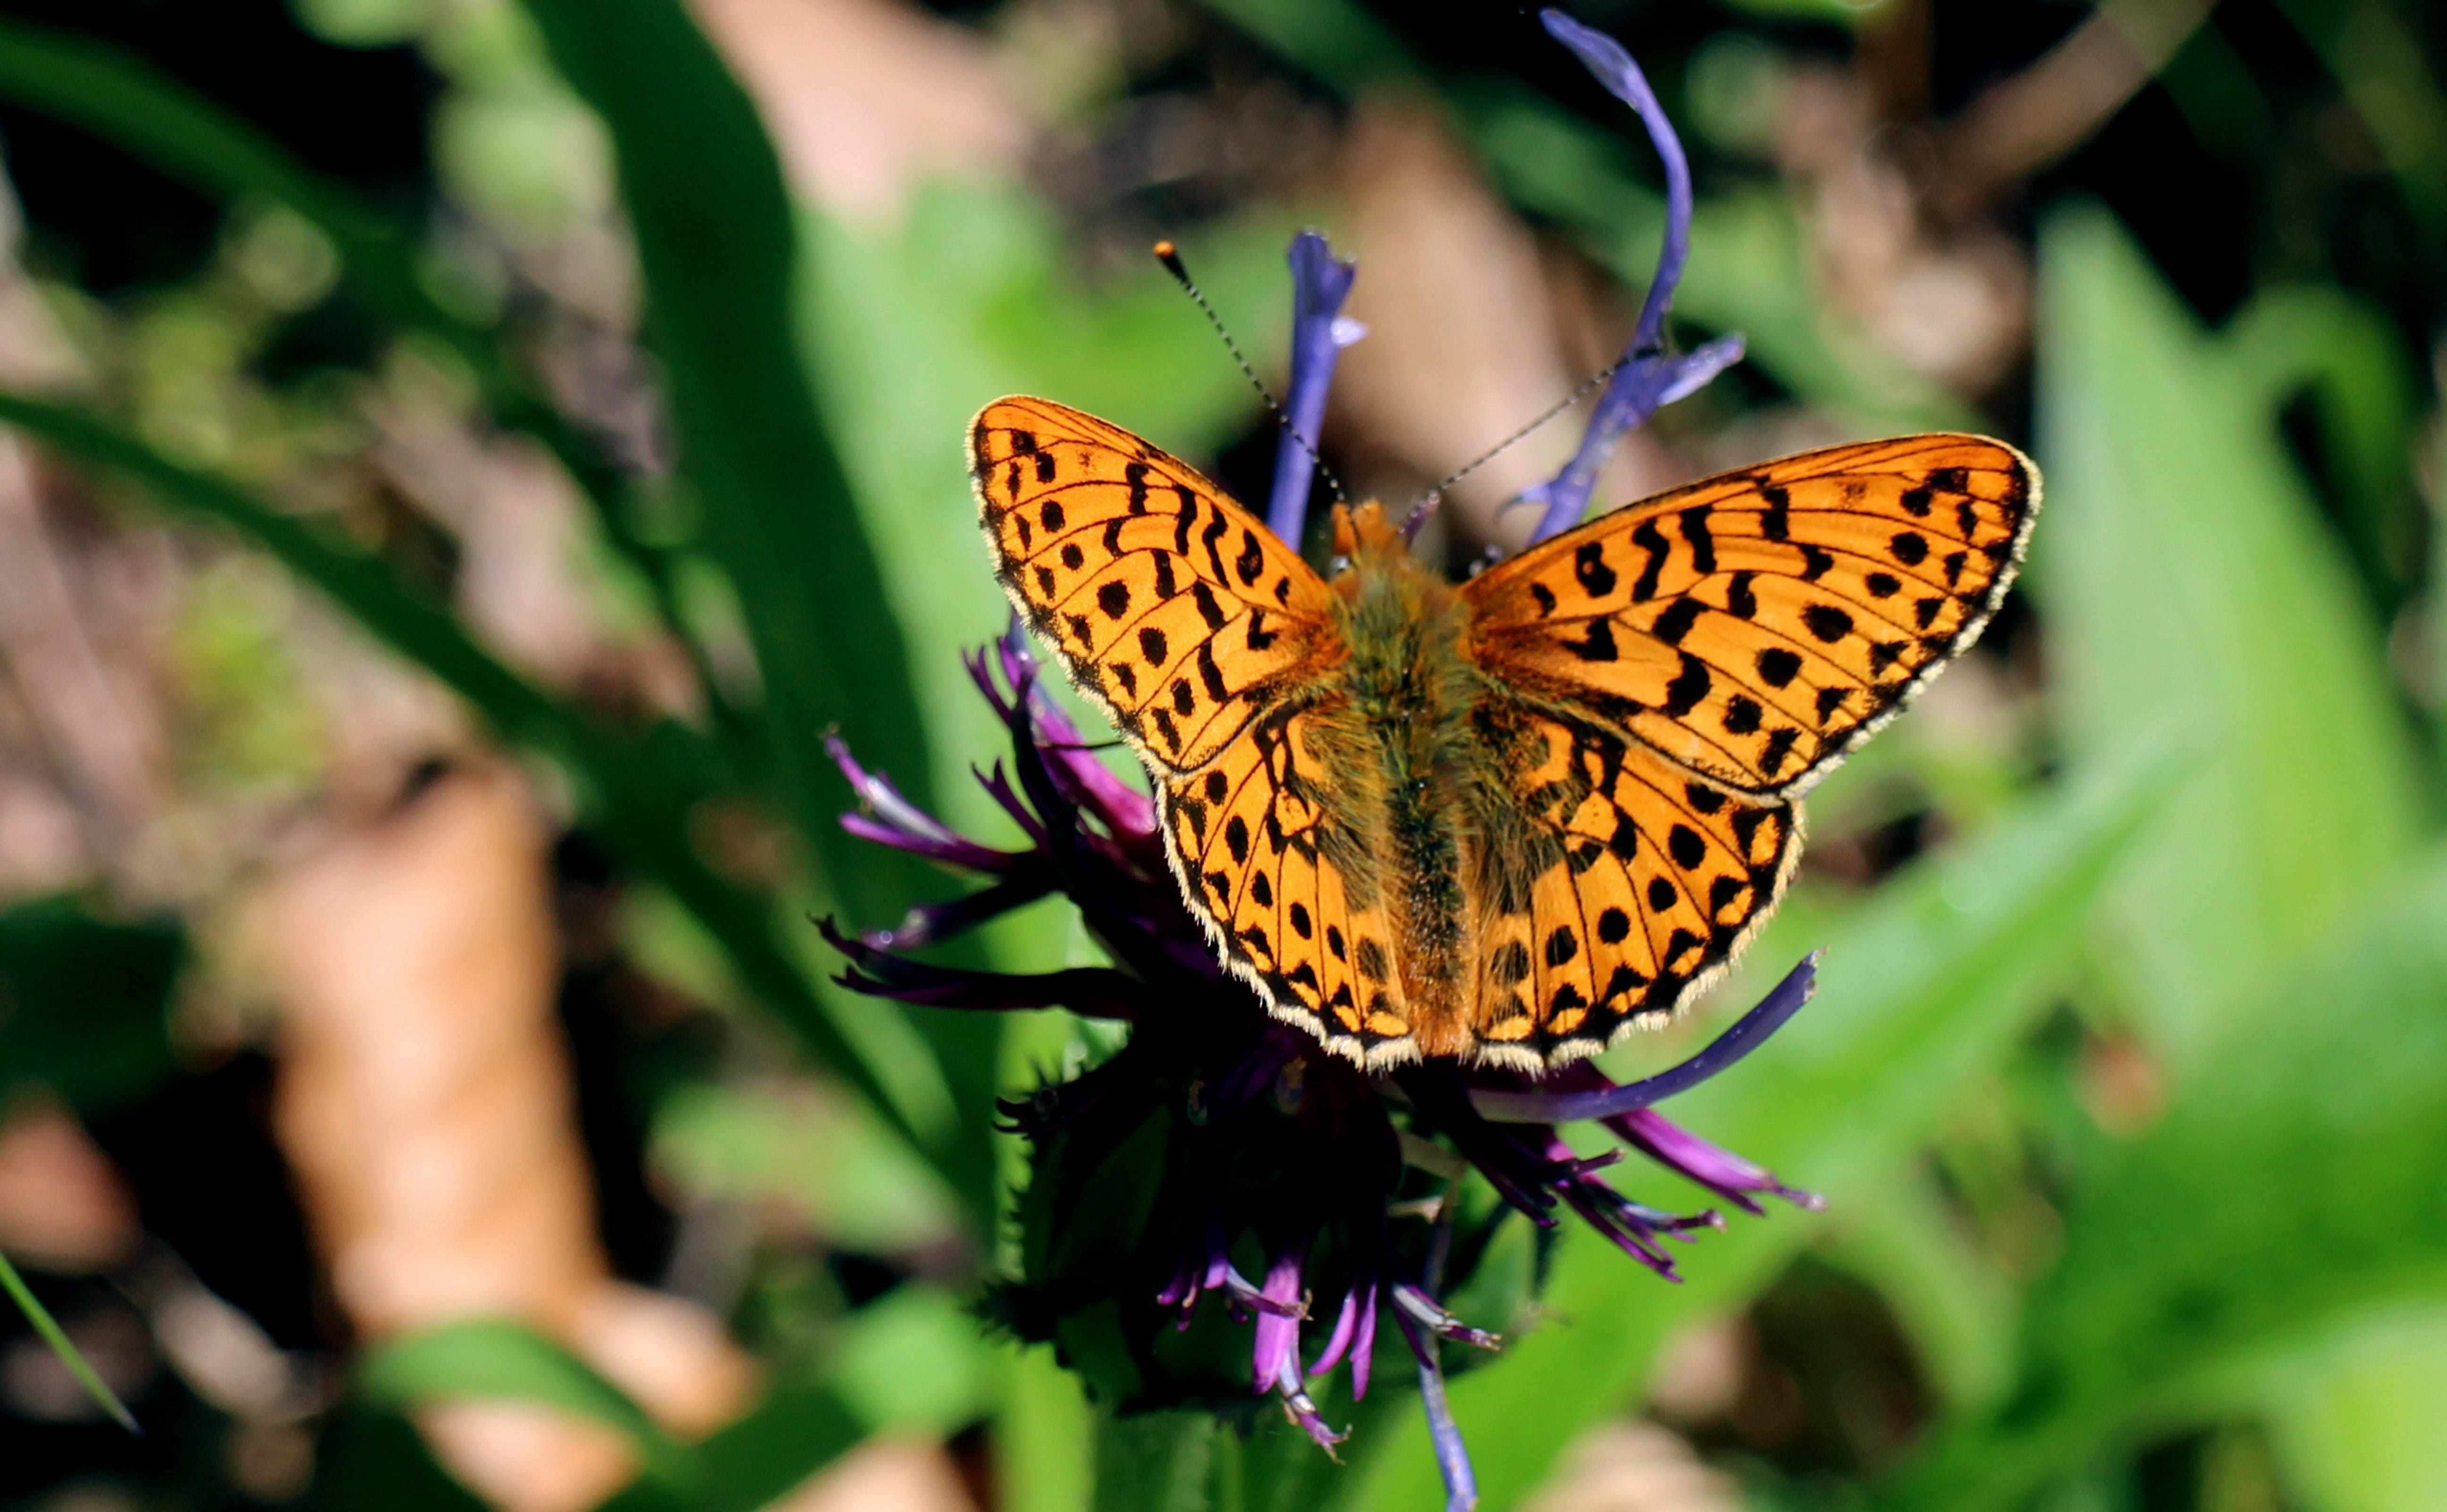 Yellow and Black Butterfly on Purple Flower at Daytime